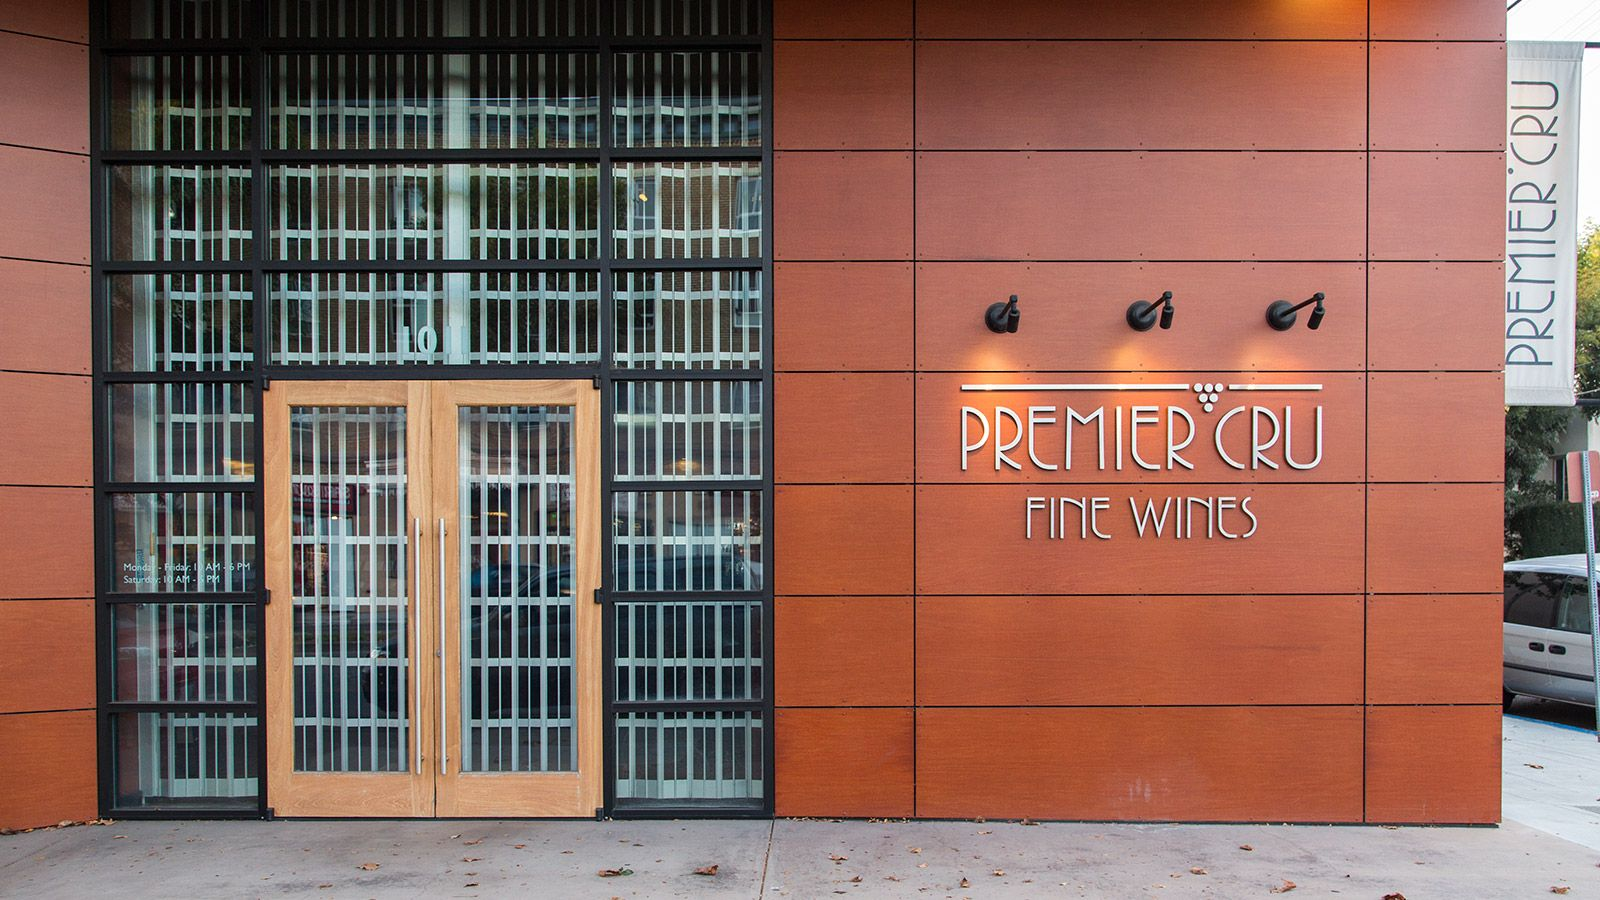 Bankrupt Premier Cru Store S Inventory Auctioned Wine Case Wine Drinks Wine Spectator